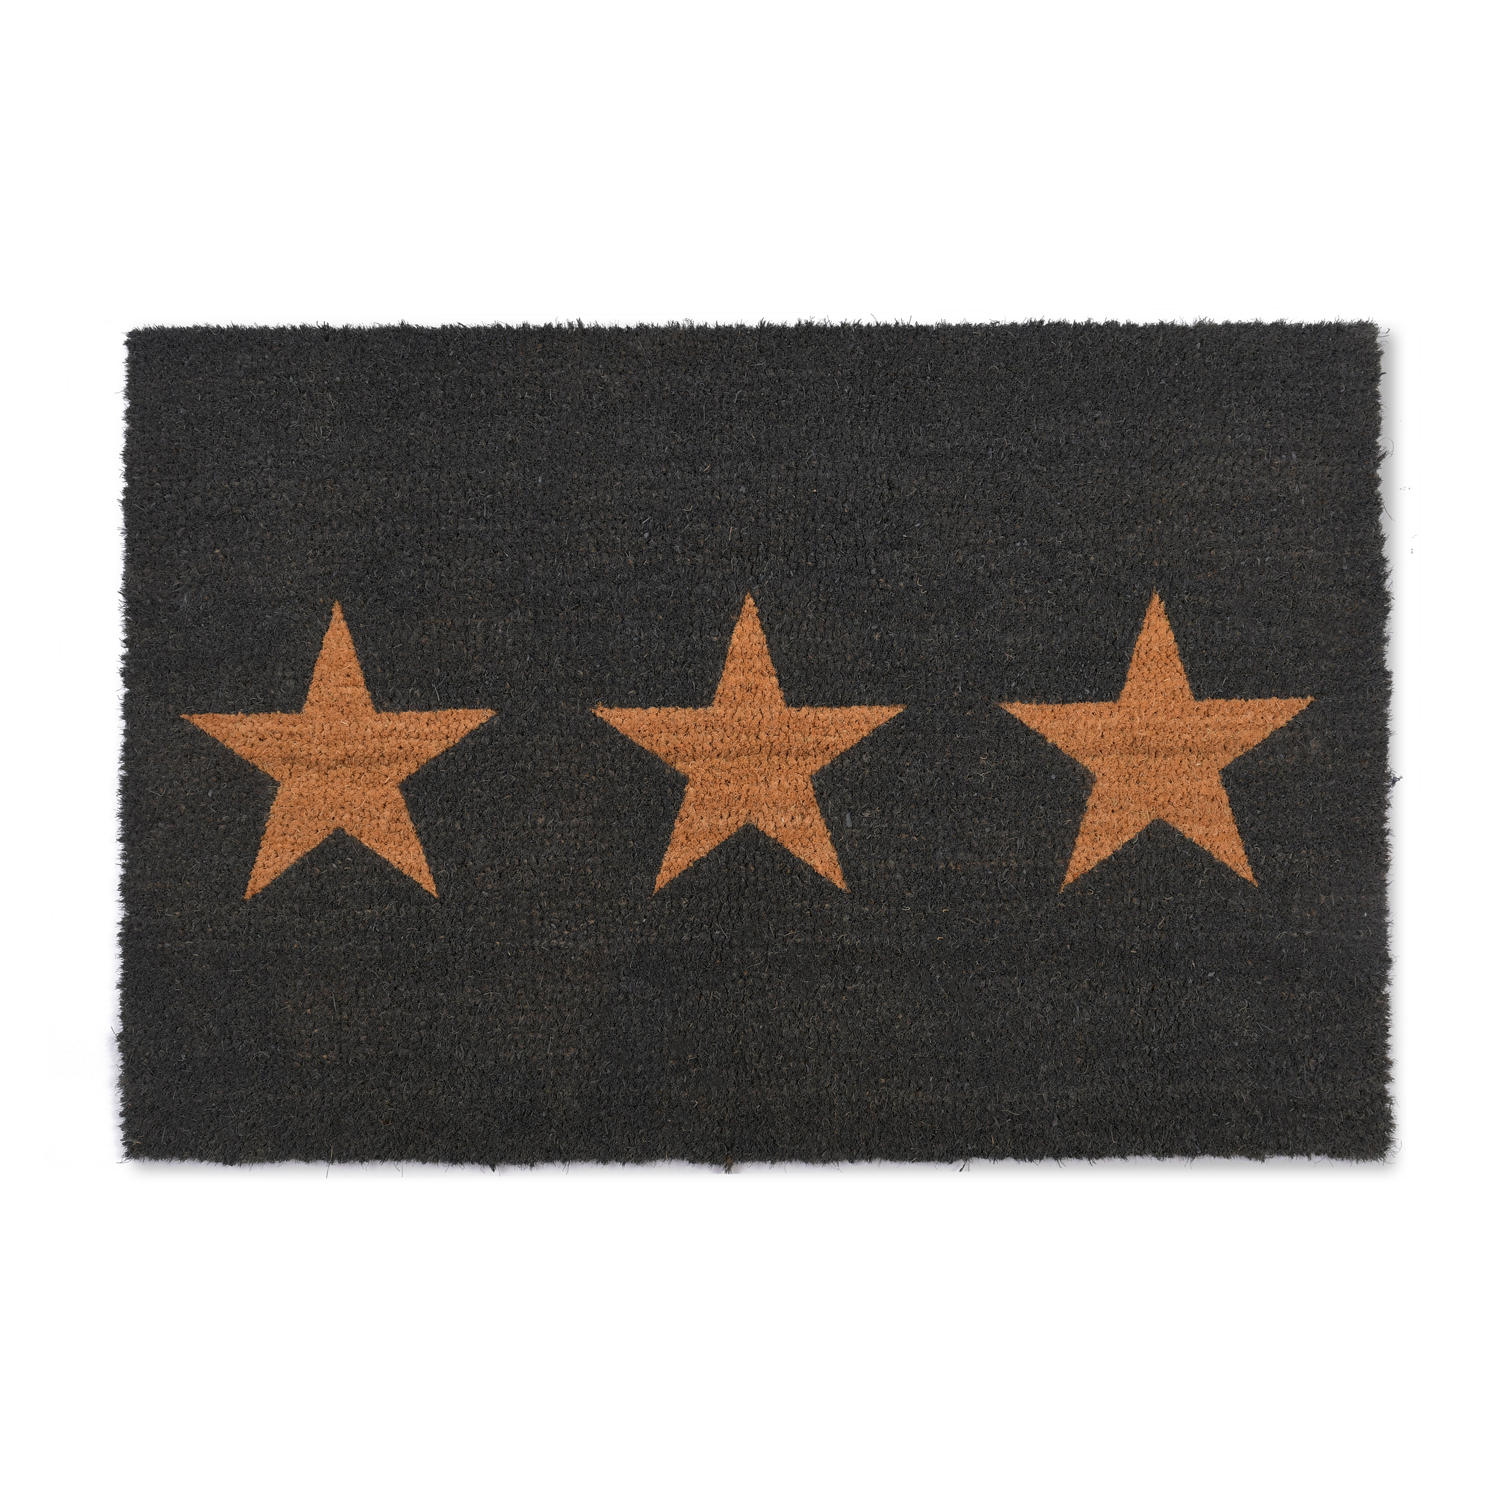 Image of Garden Trading Large Doormat 3 Stars, Charcoal